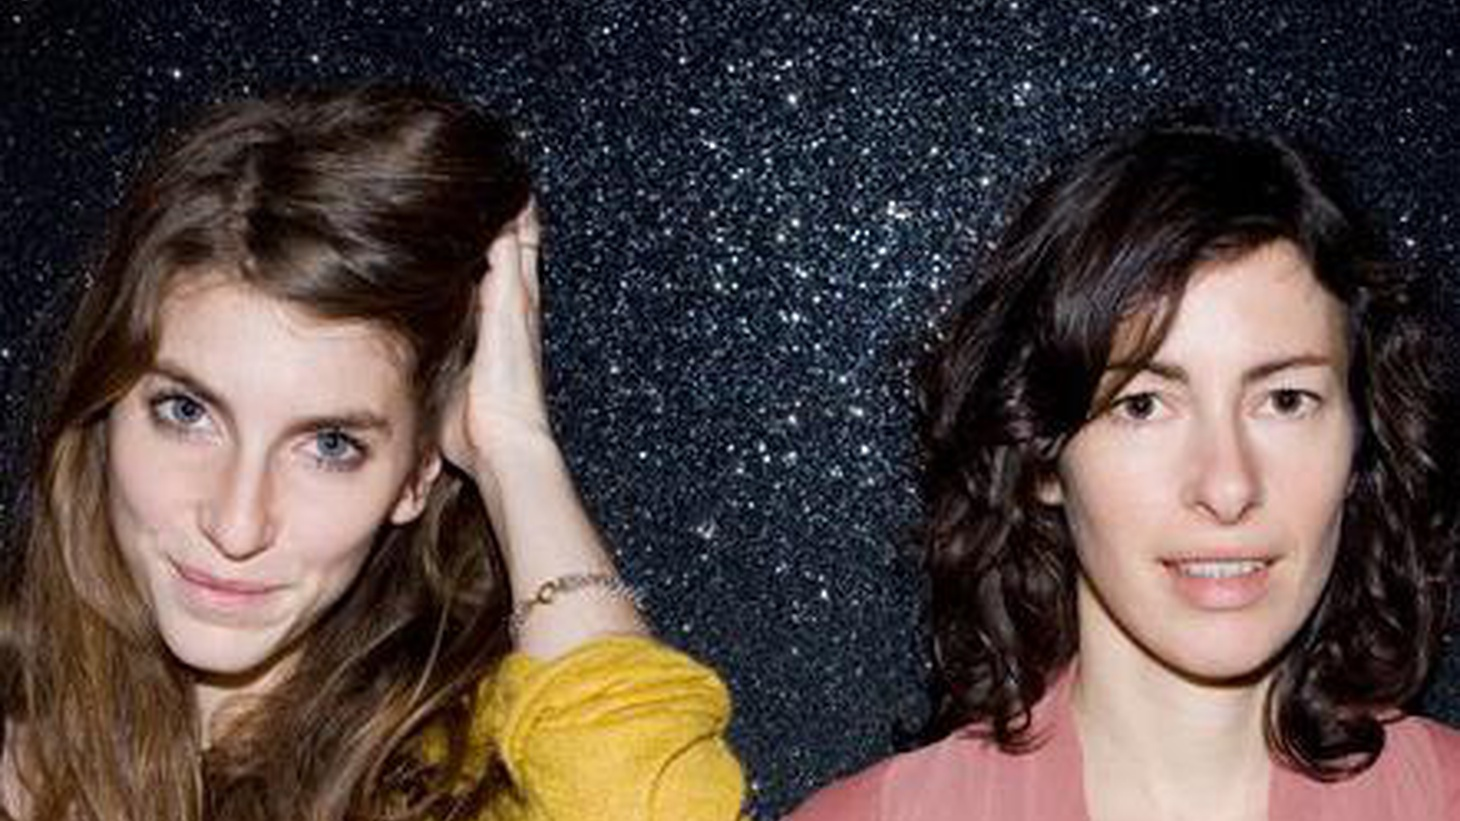 Boy is actually a band of two young women from Germany. Their debut full-length chronicles their hopes and aspirations in a series of excellent pop songs.